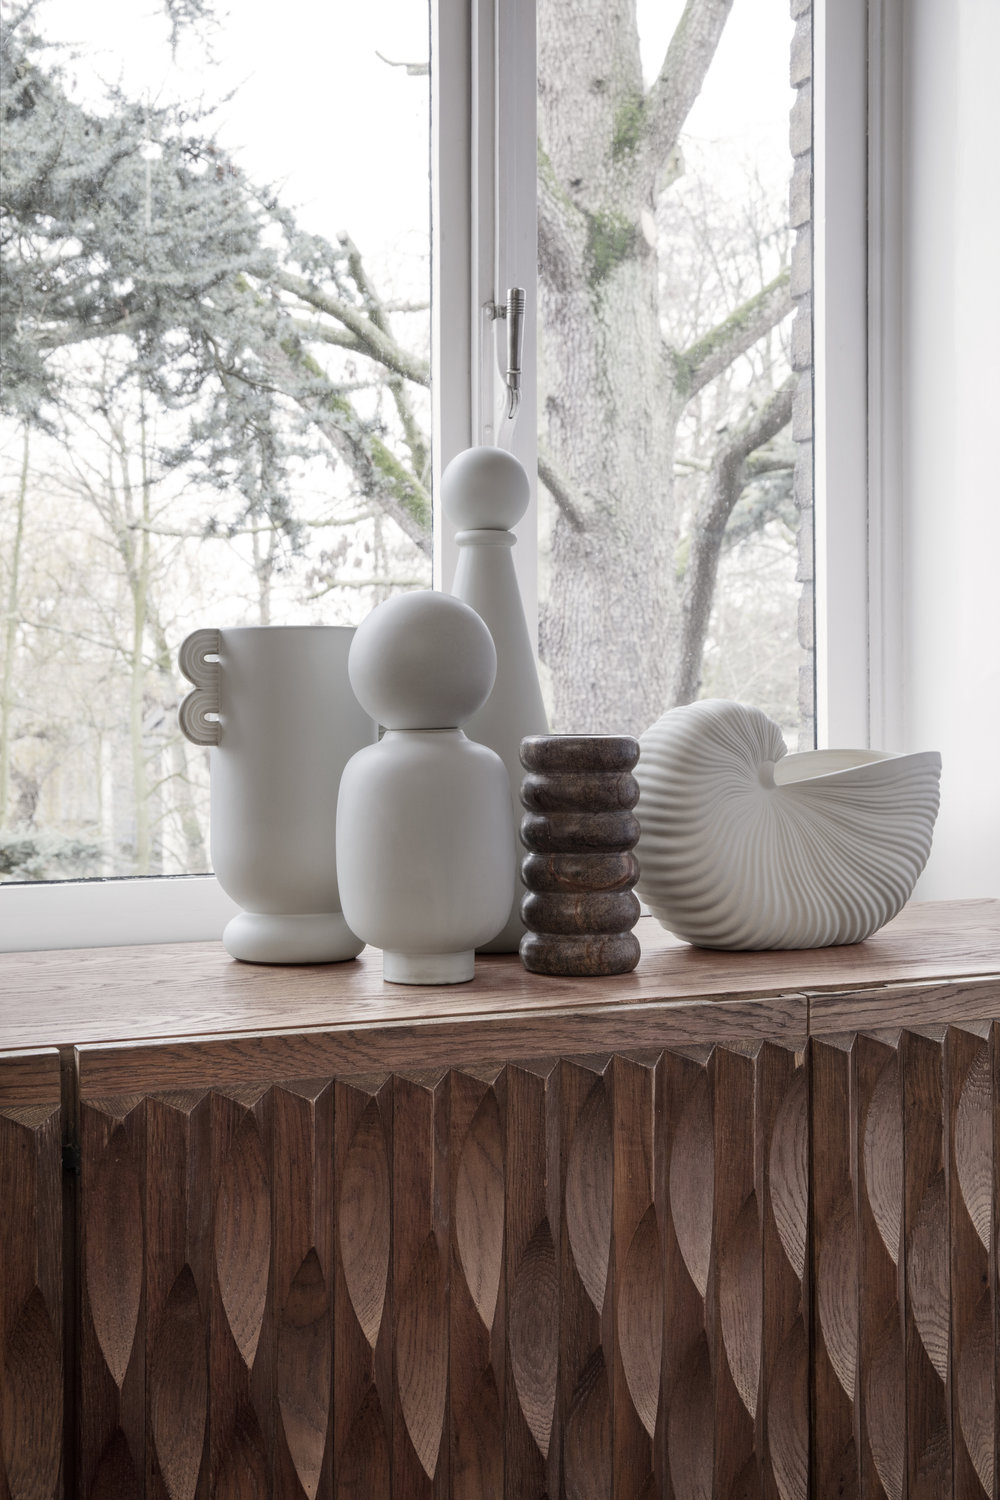 Muses Vases and Bendum Vase from Ferm Living